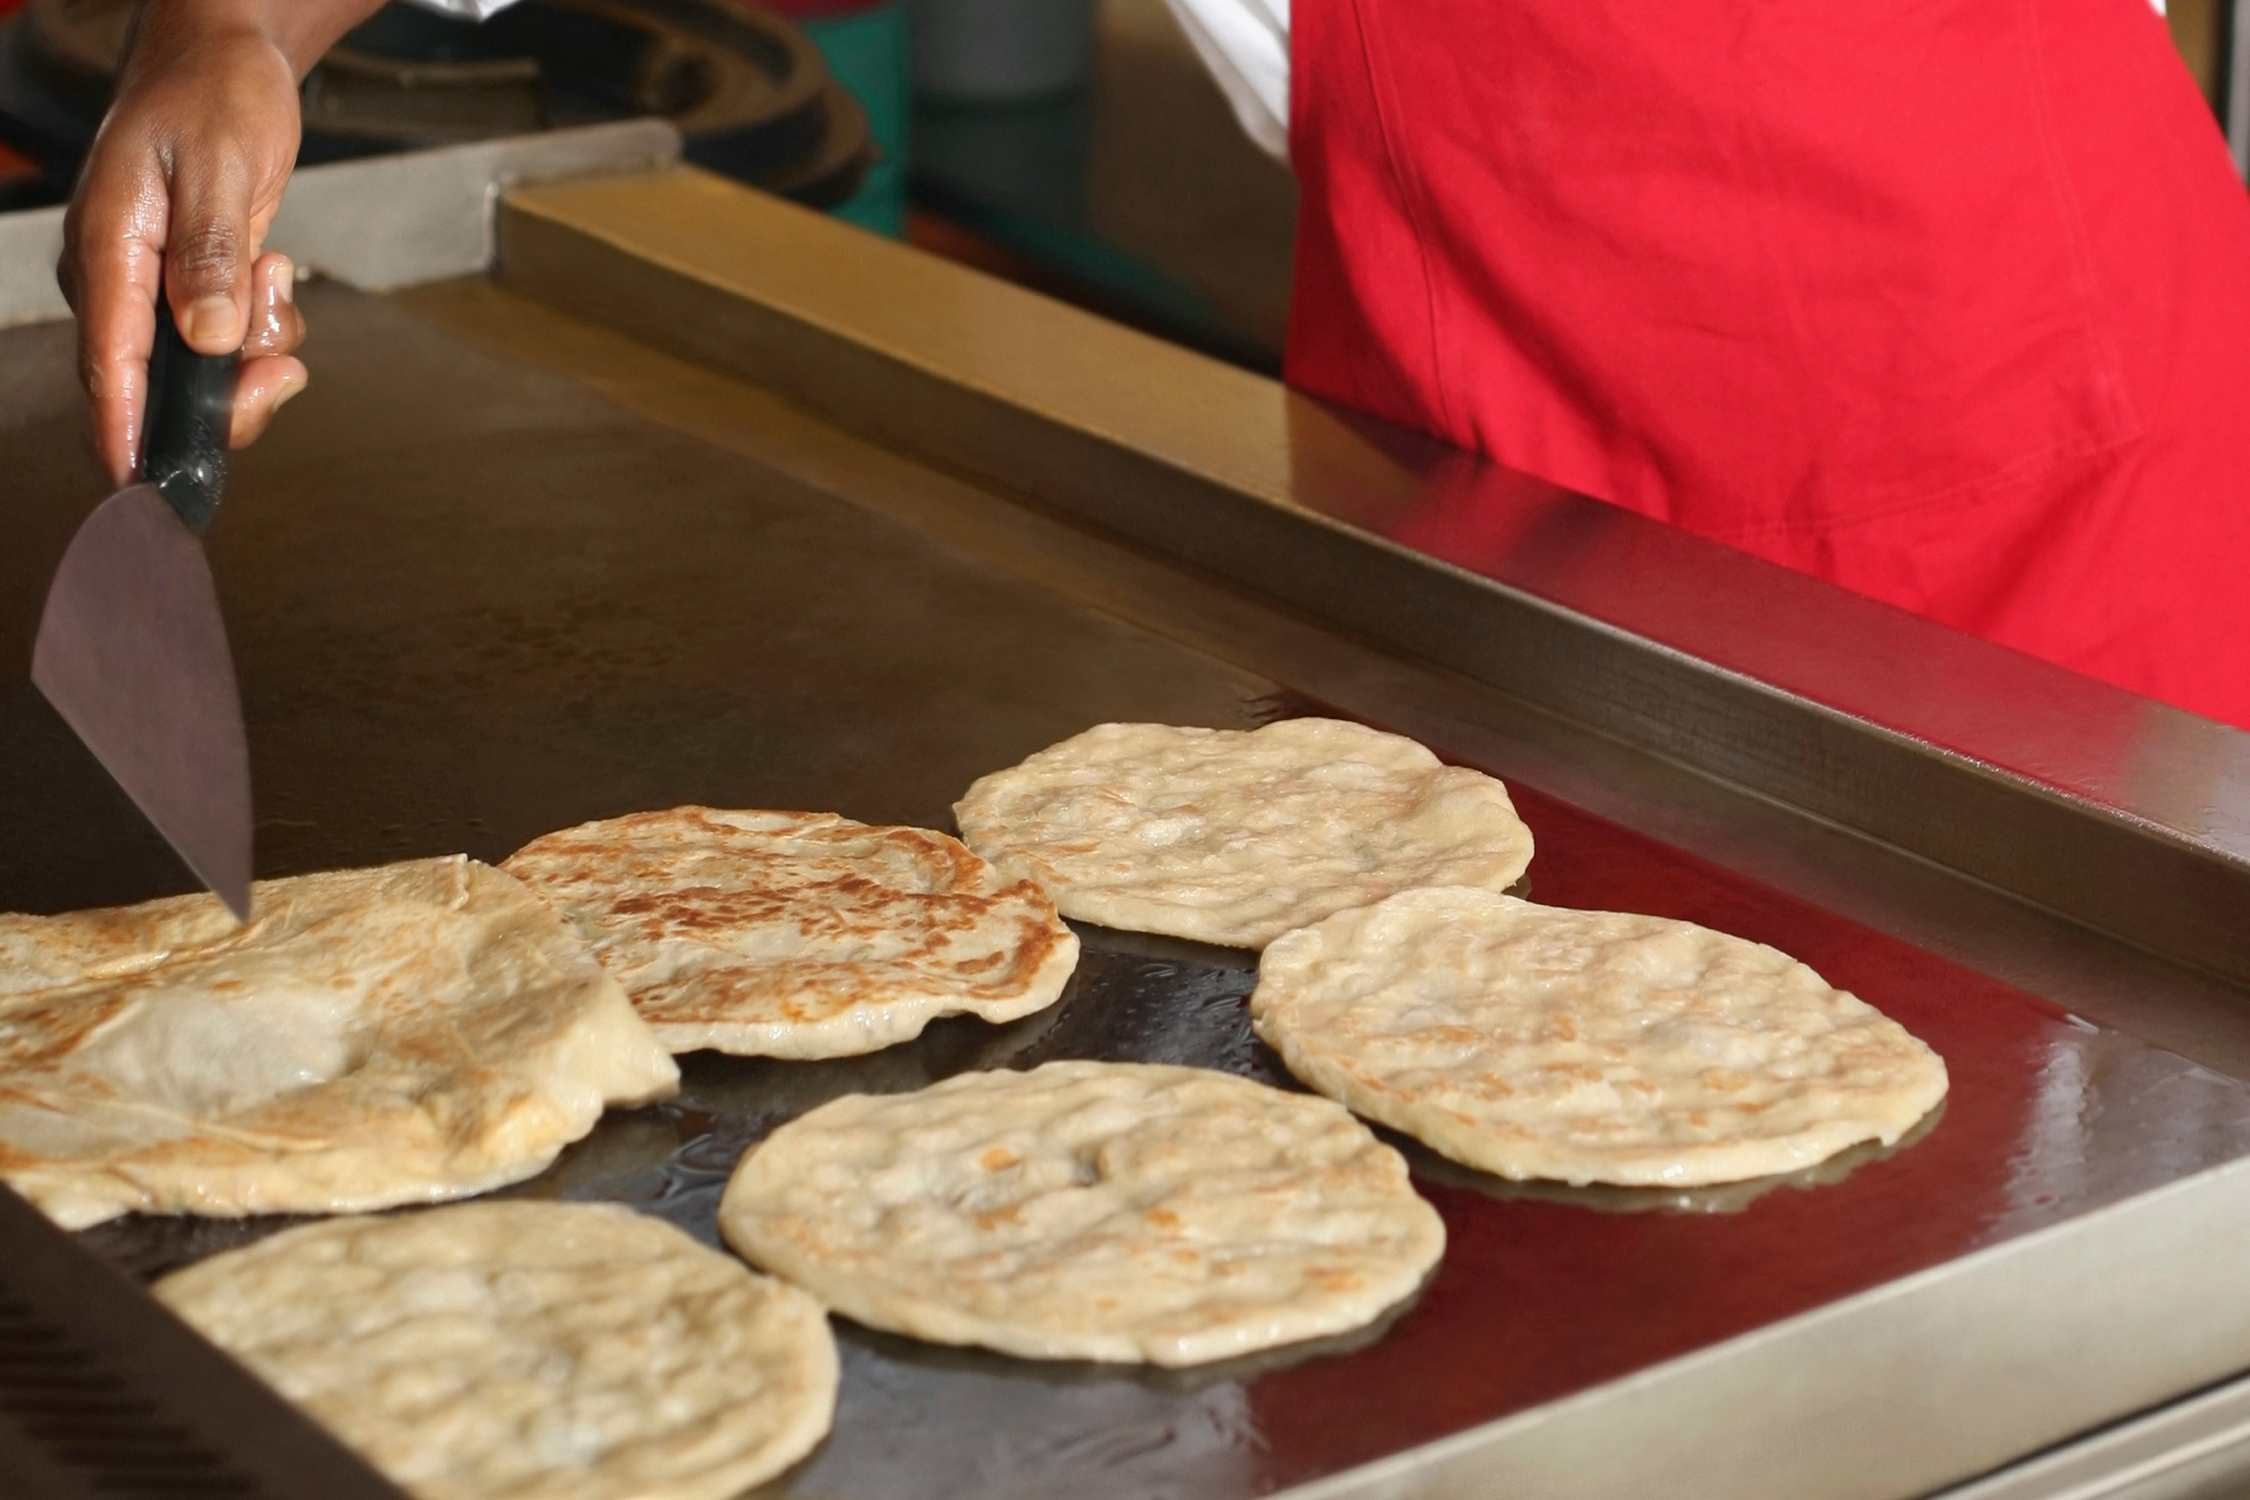 Cooking roti canai on an oiled griddle